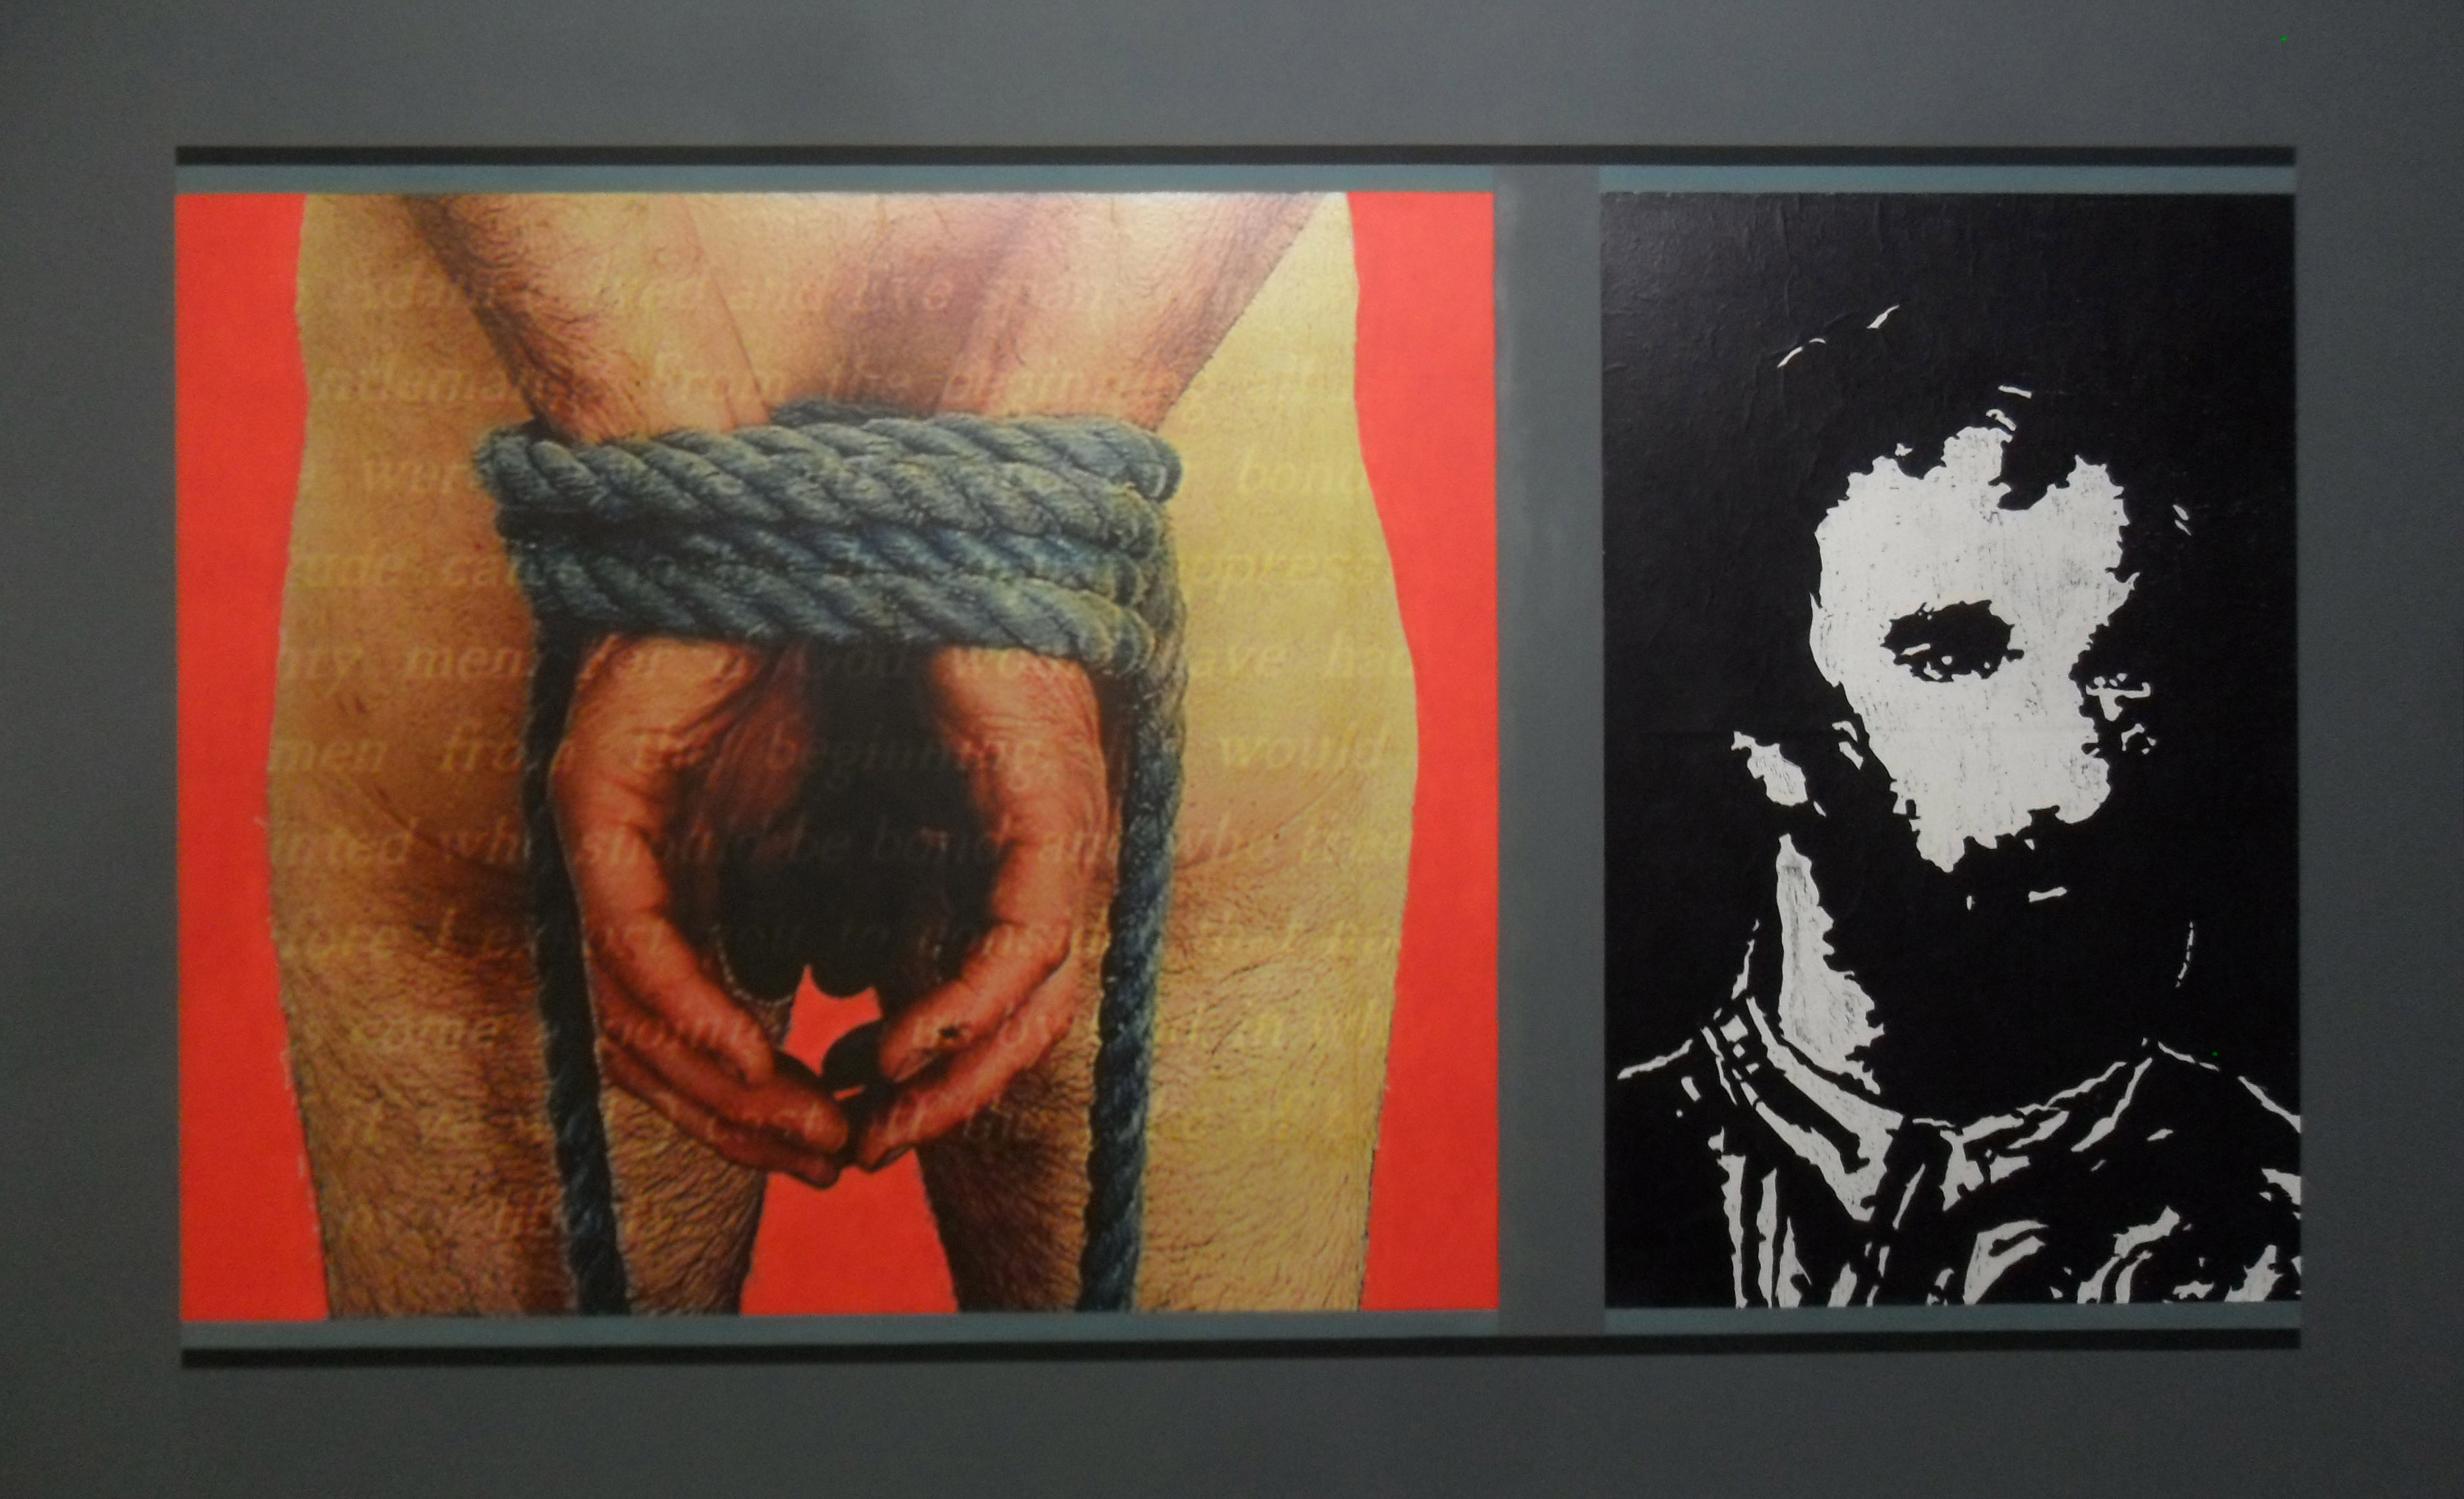 watt tyler and me, photo-print, woodcut  and acrylic paint on canvas, 240cm x 170cm, 2014